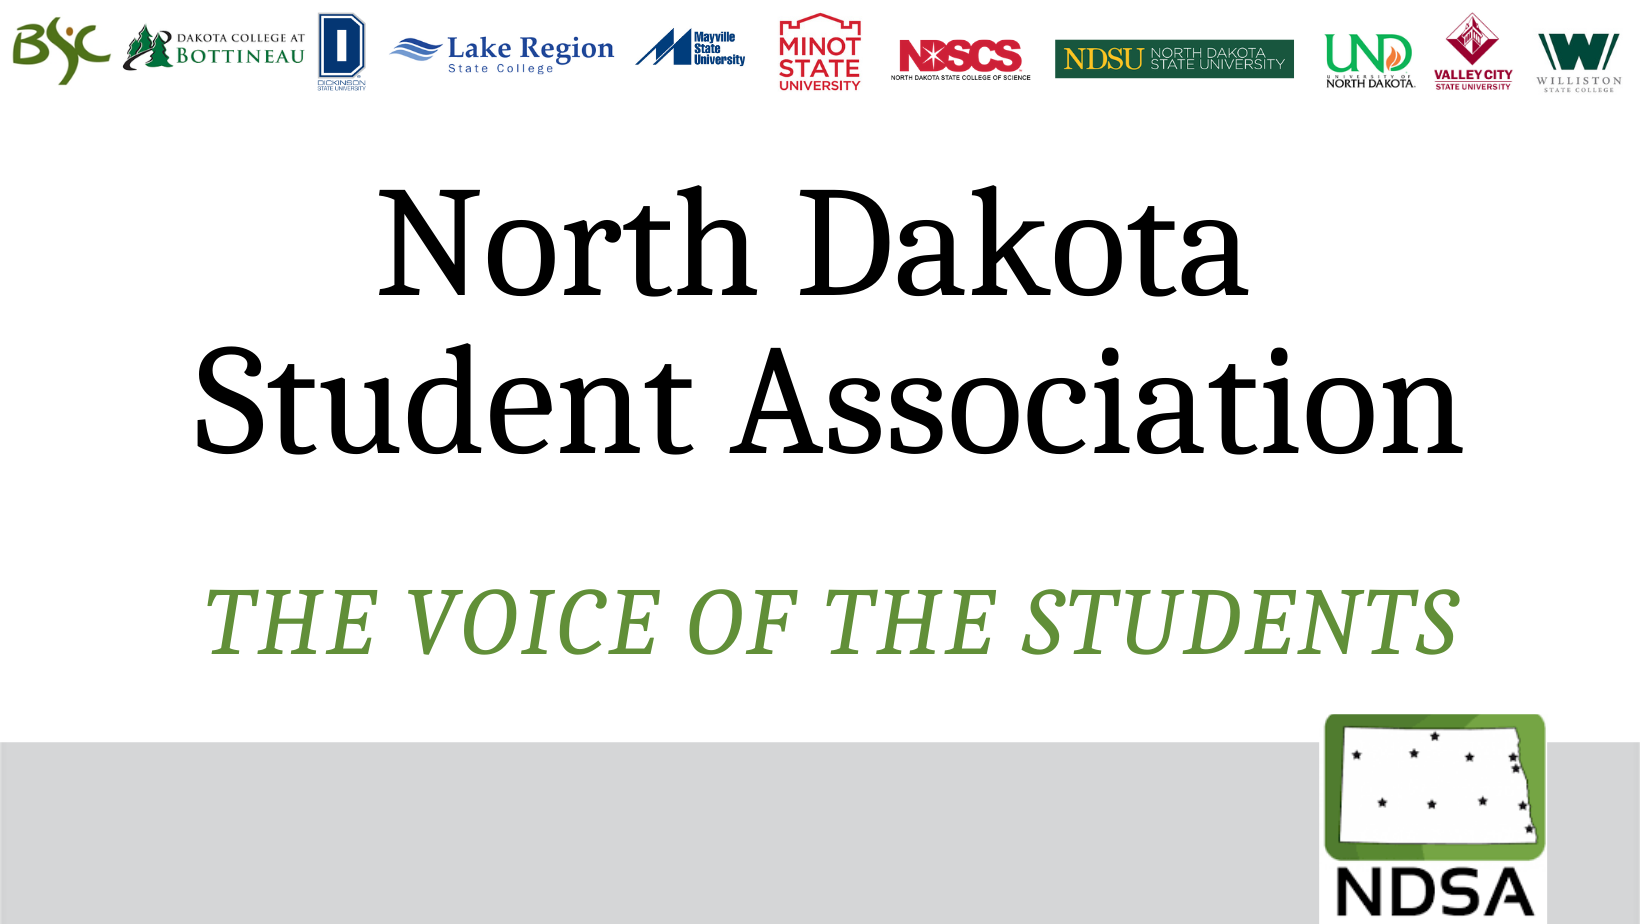 North Dakota Student Association